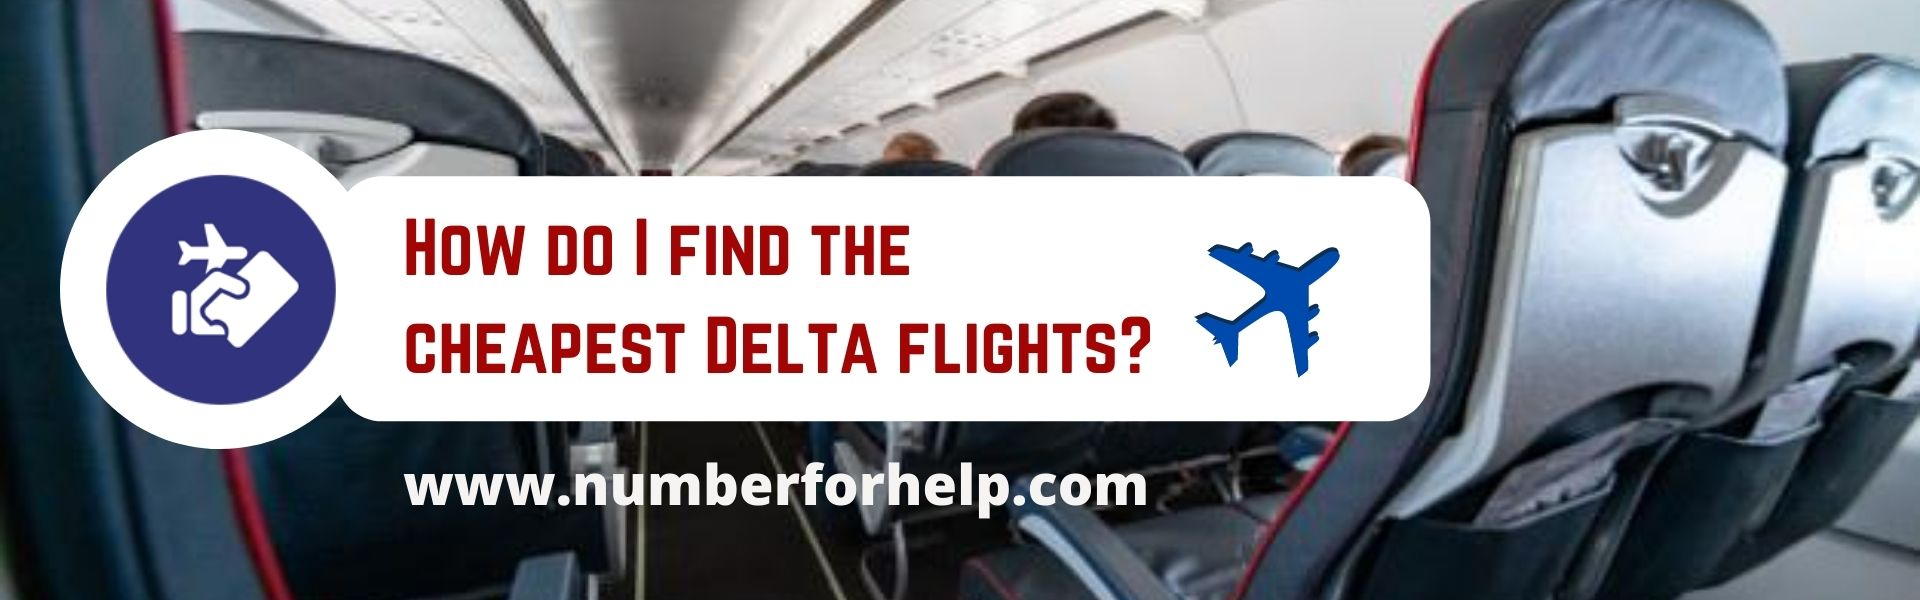 2020-08-21-08-46-25How do I find the cheapest Delta flights